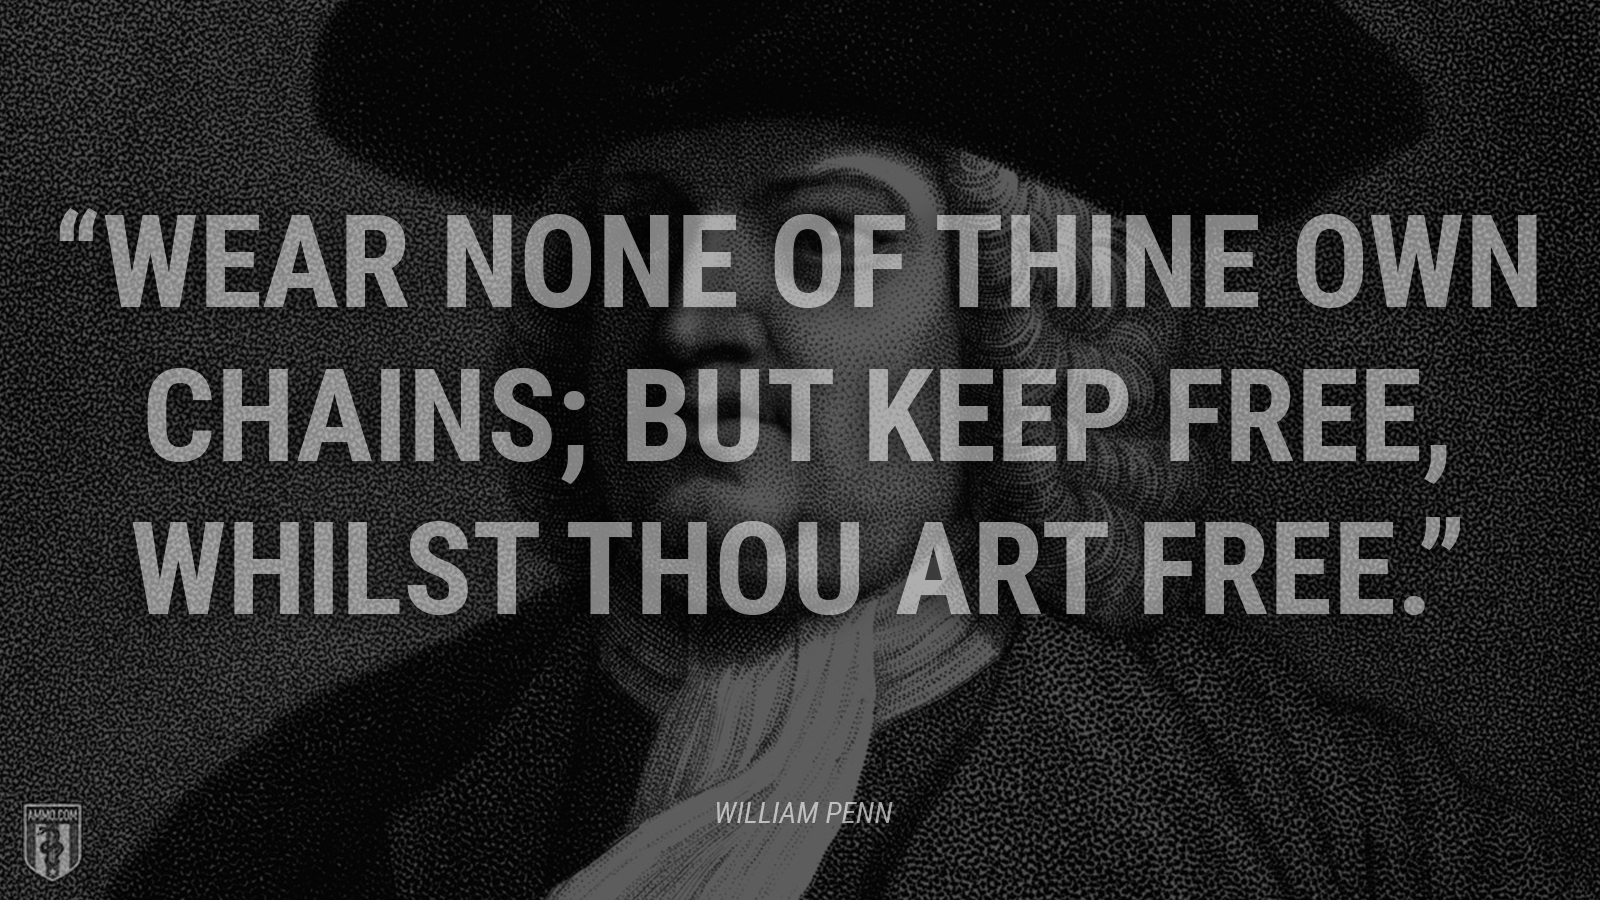 """Wear none of thine own chains; but keep free, whilst thou art free."" - William Penn"